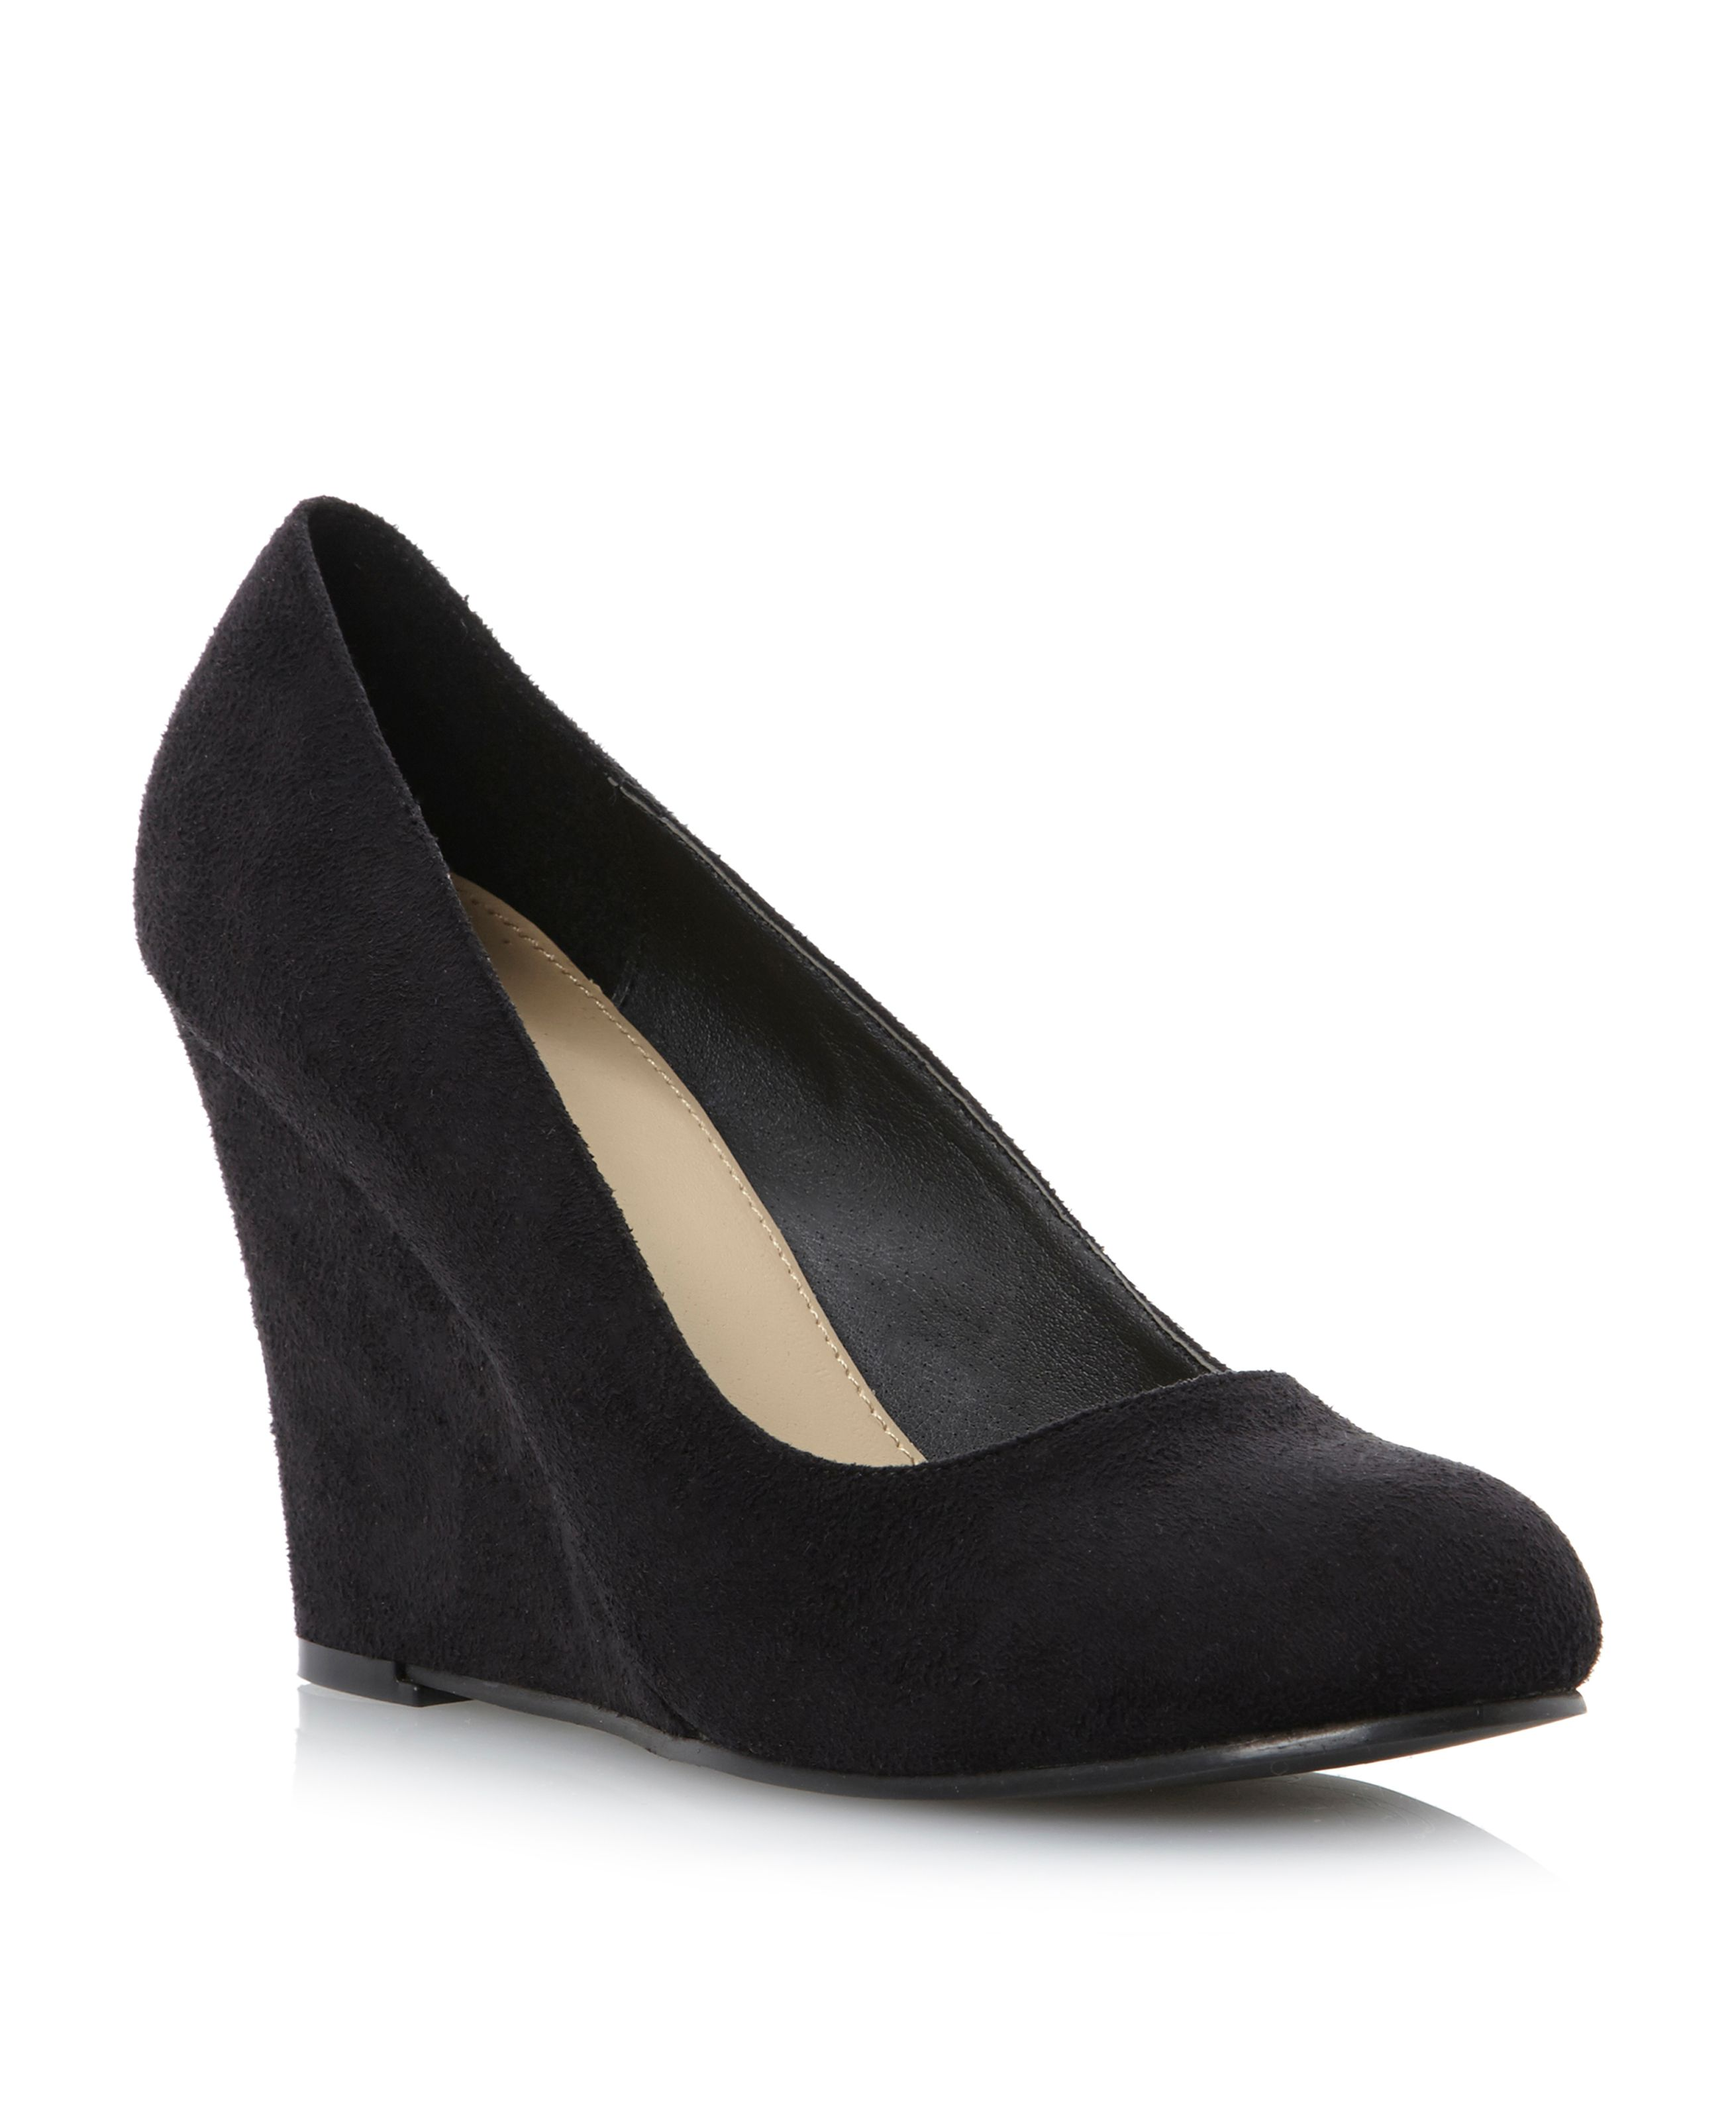 Adlington high heel wedge court shoes